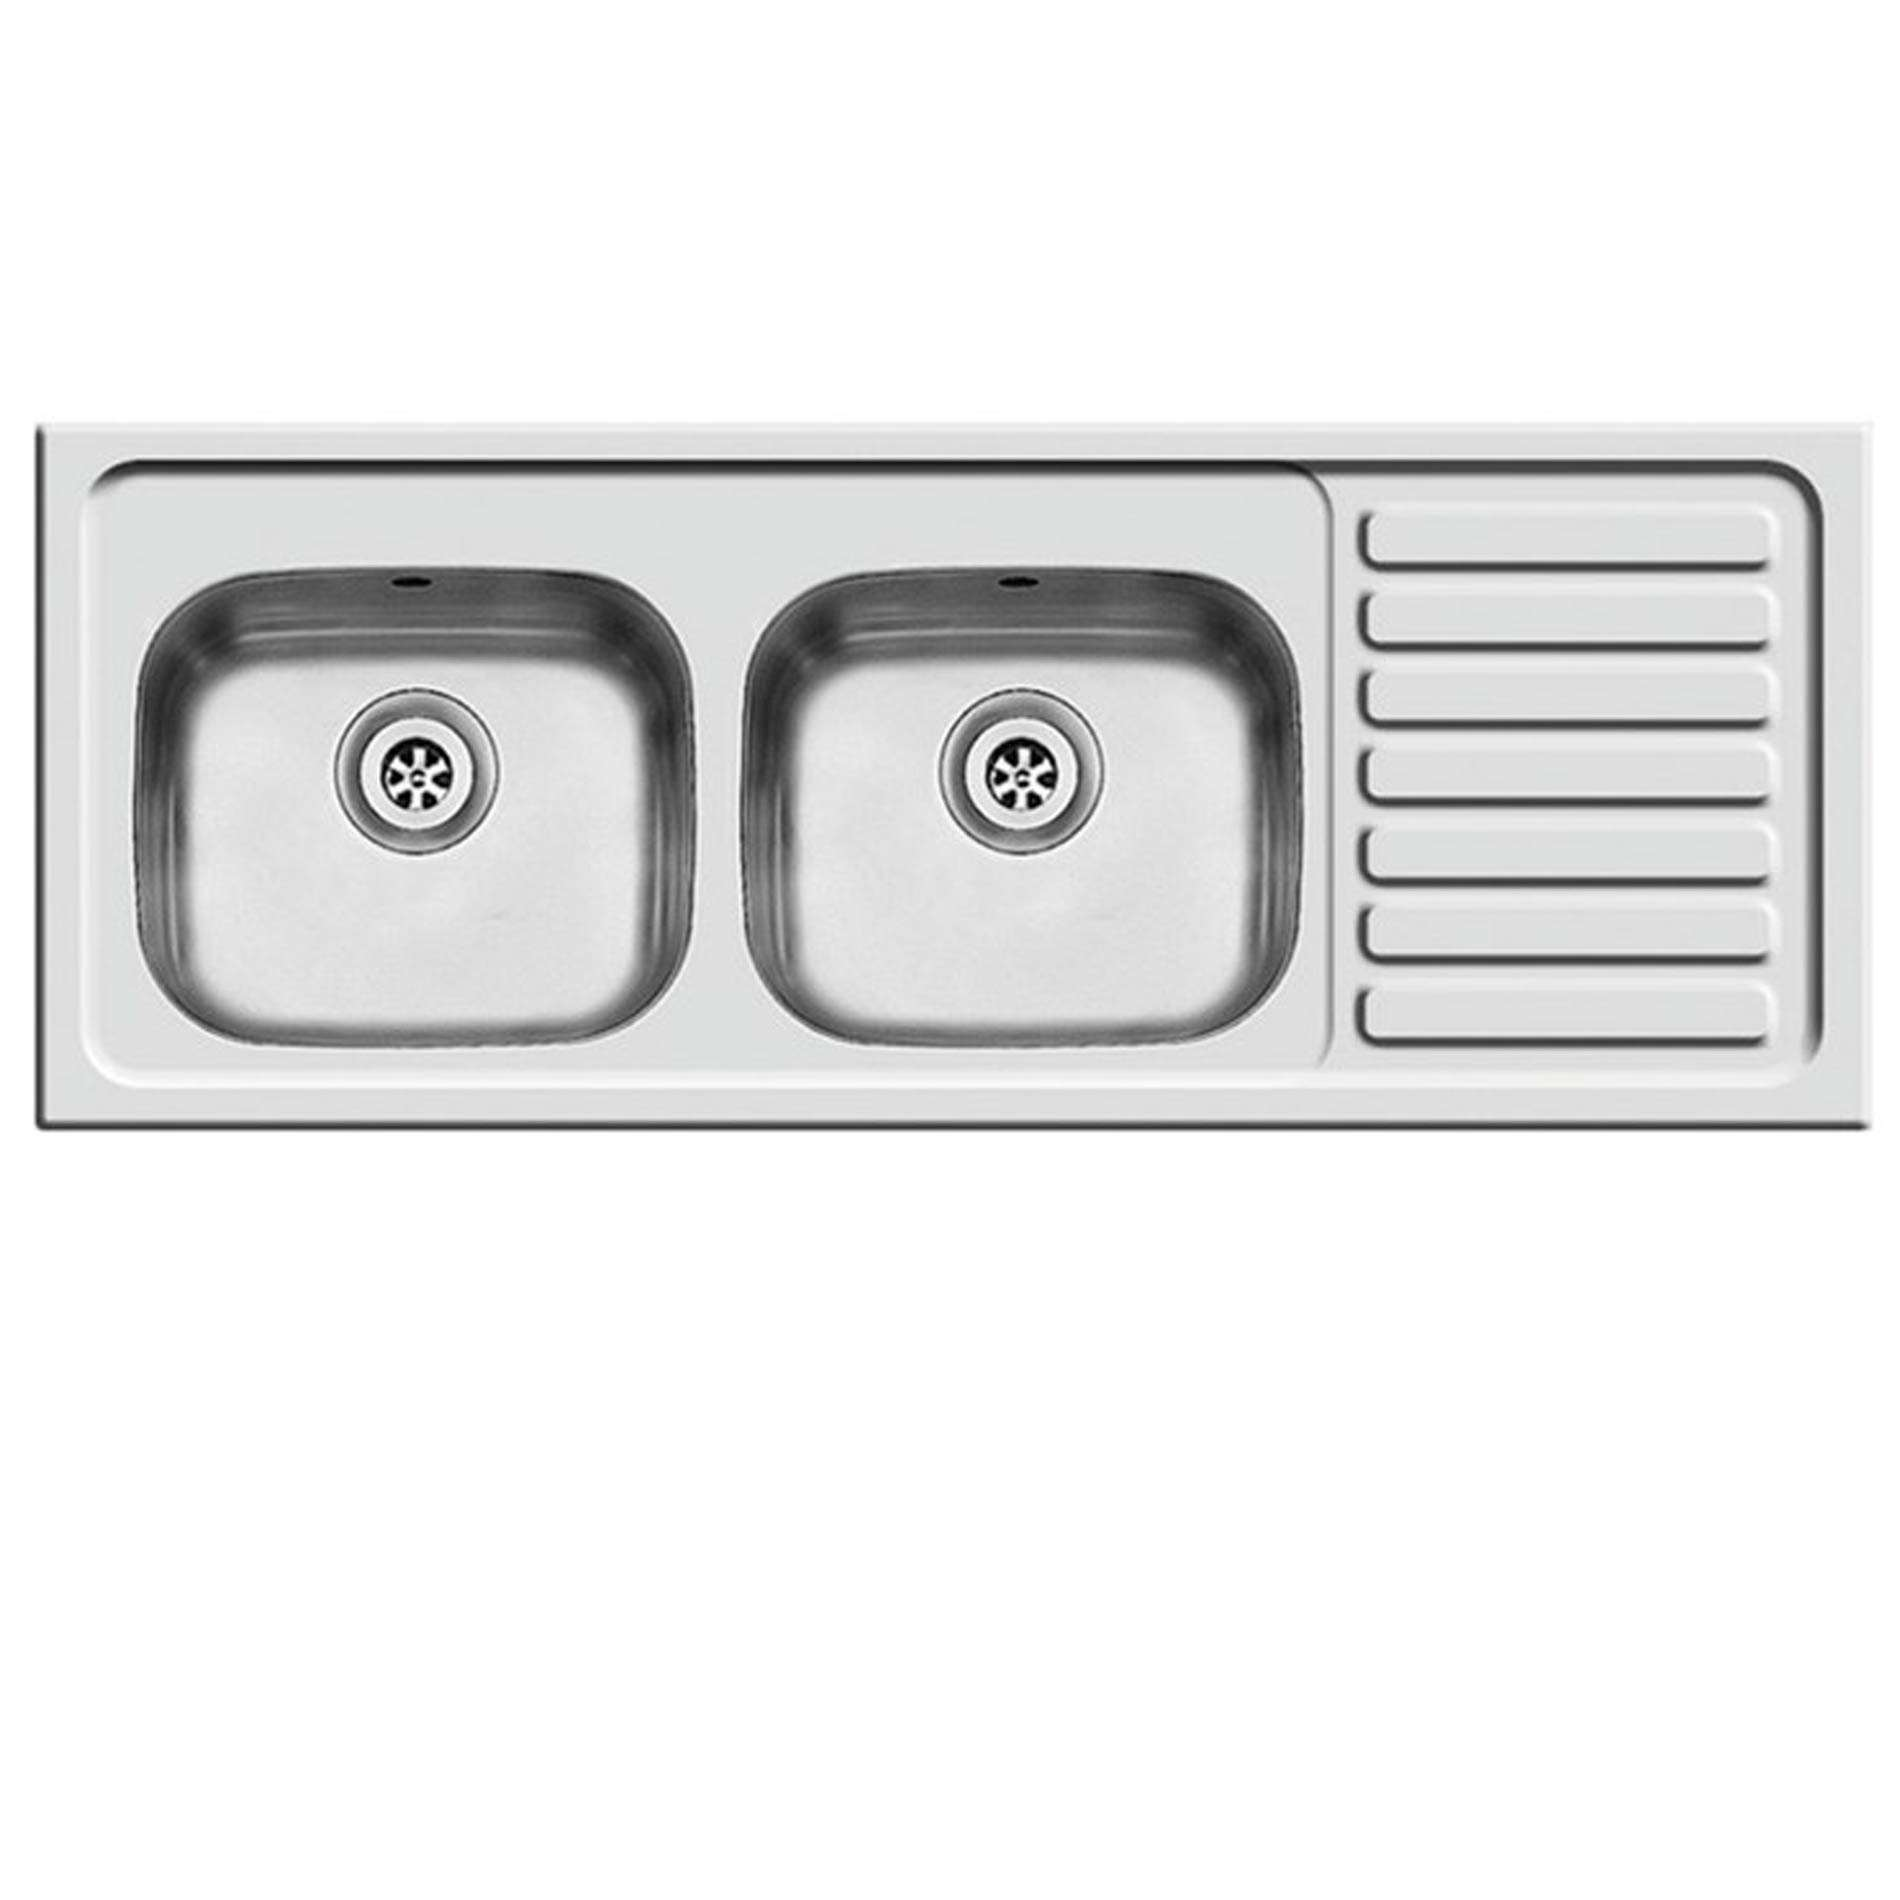 Picture Of Contract DBSD Double Bowl Stainless Steel Sink